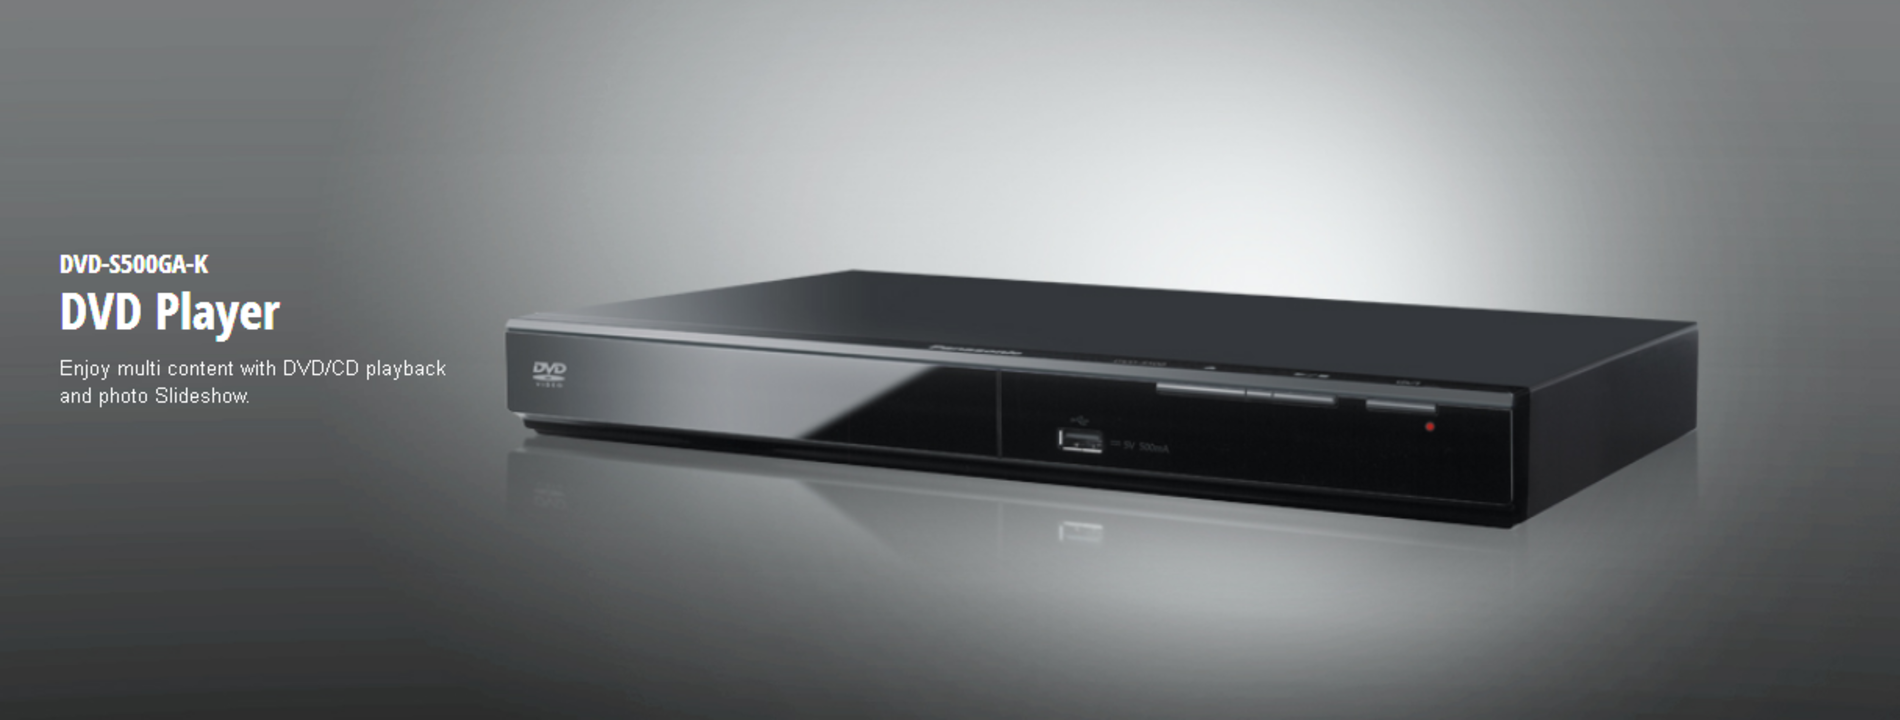 Panasonic S500 DVD player